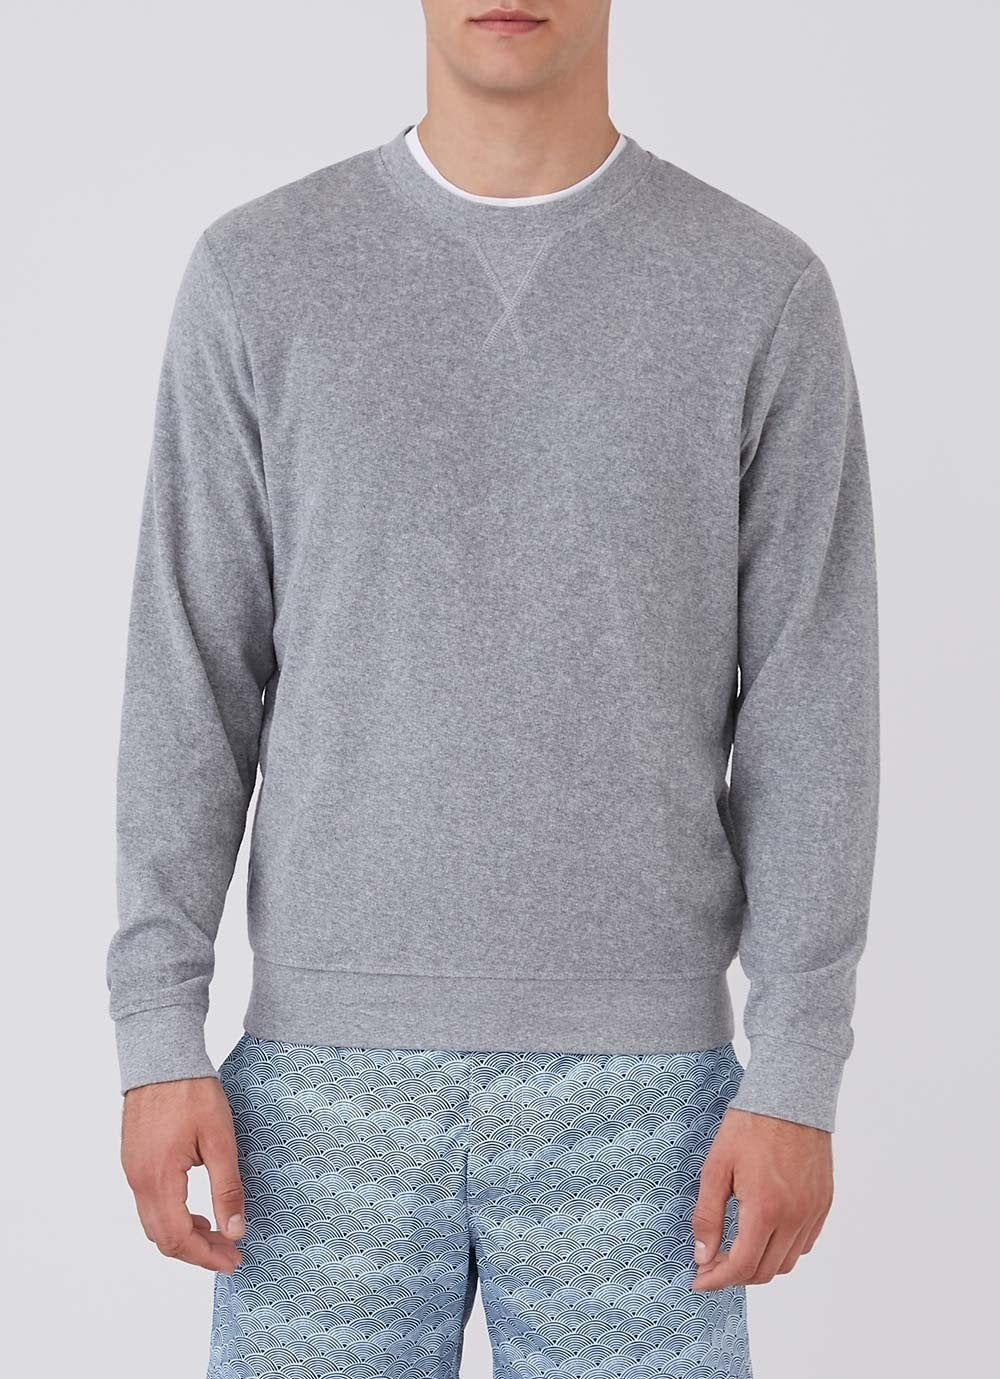 Sunspel-Organic-Cotton-Towelling-Sweatshirt-Grey-Melange